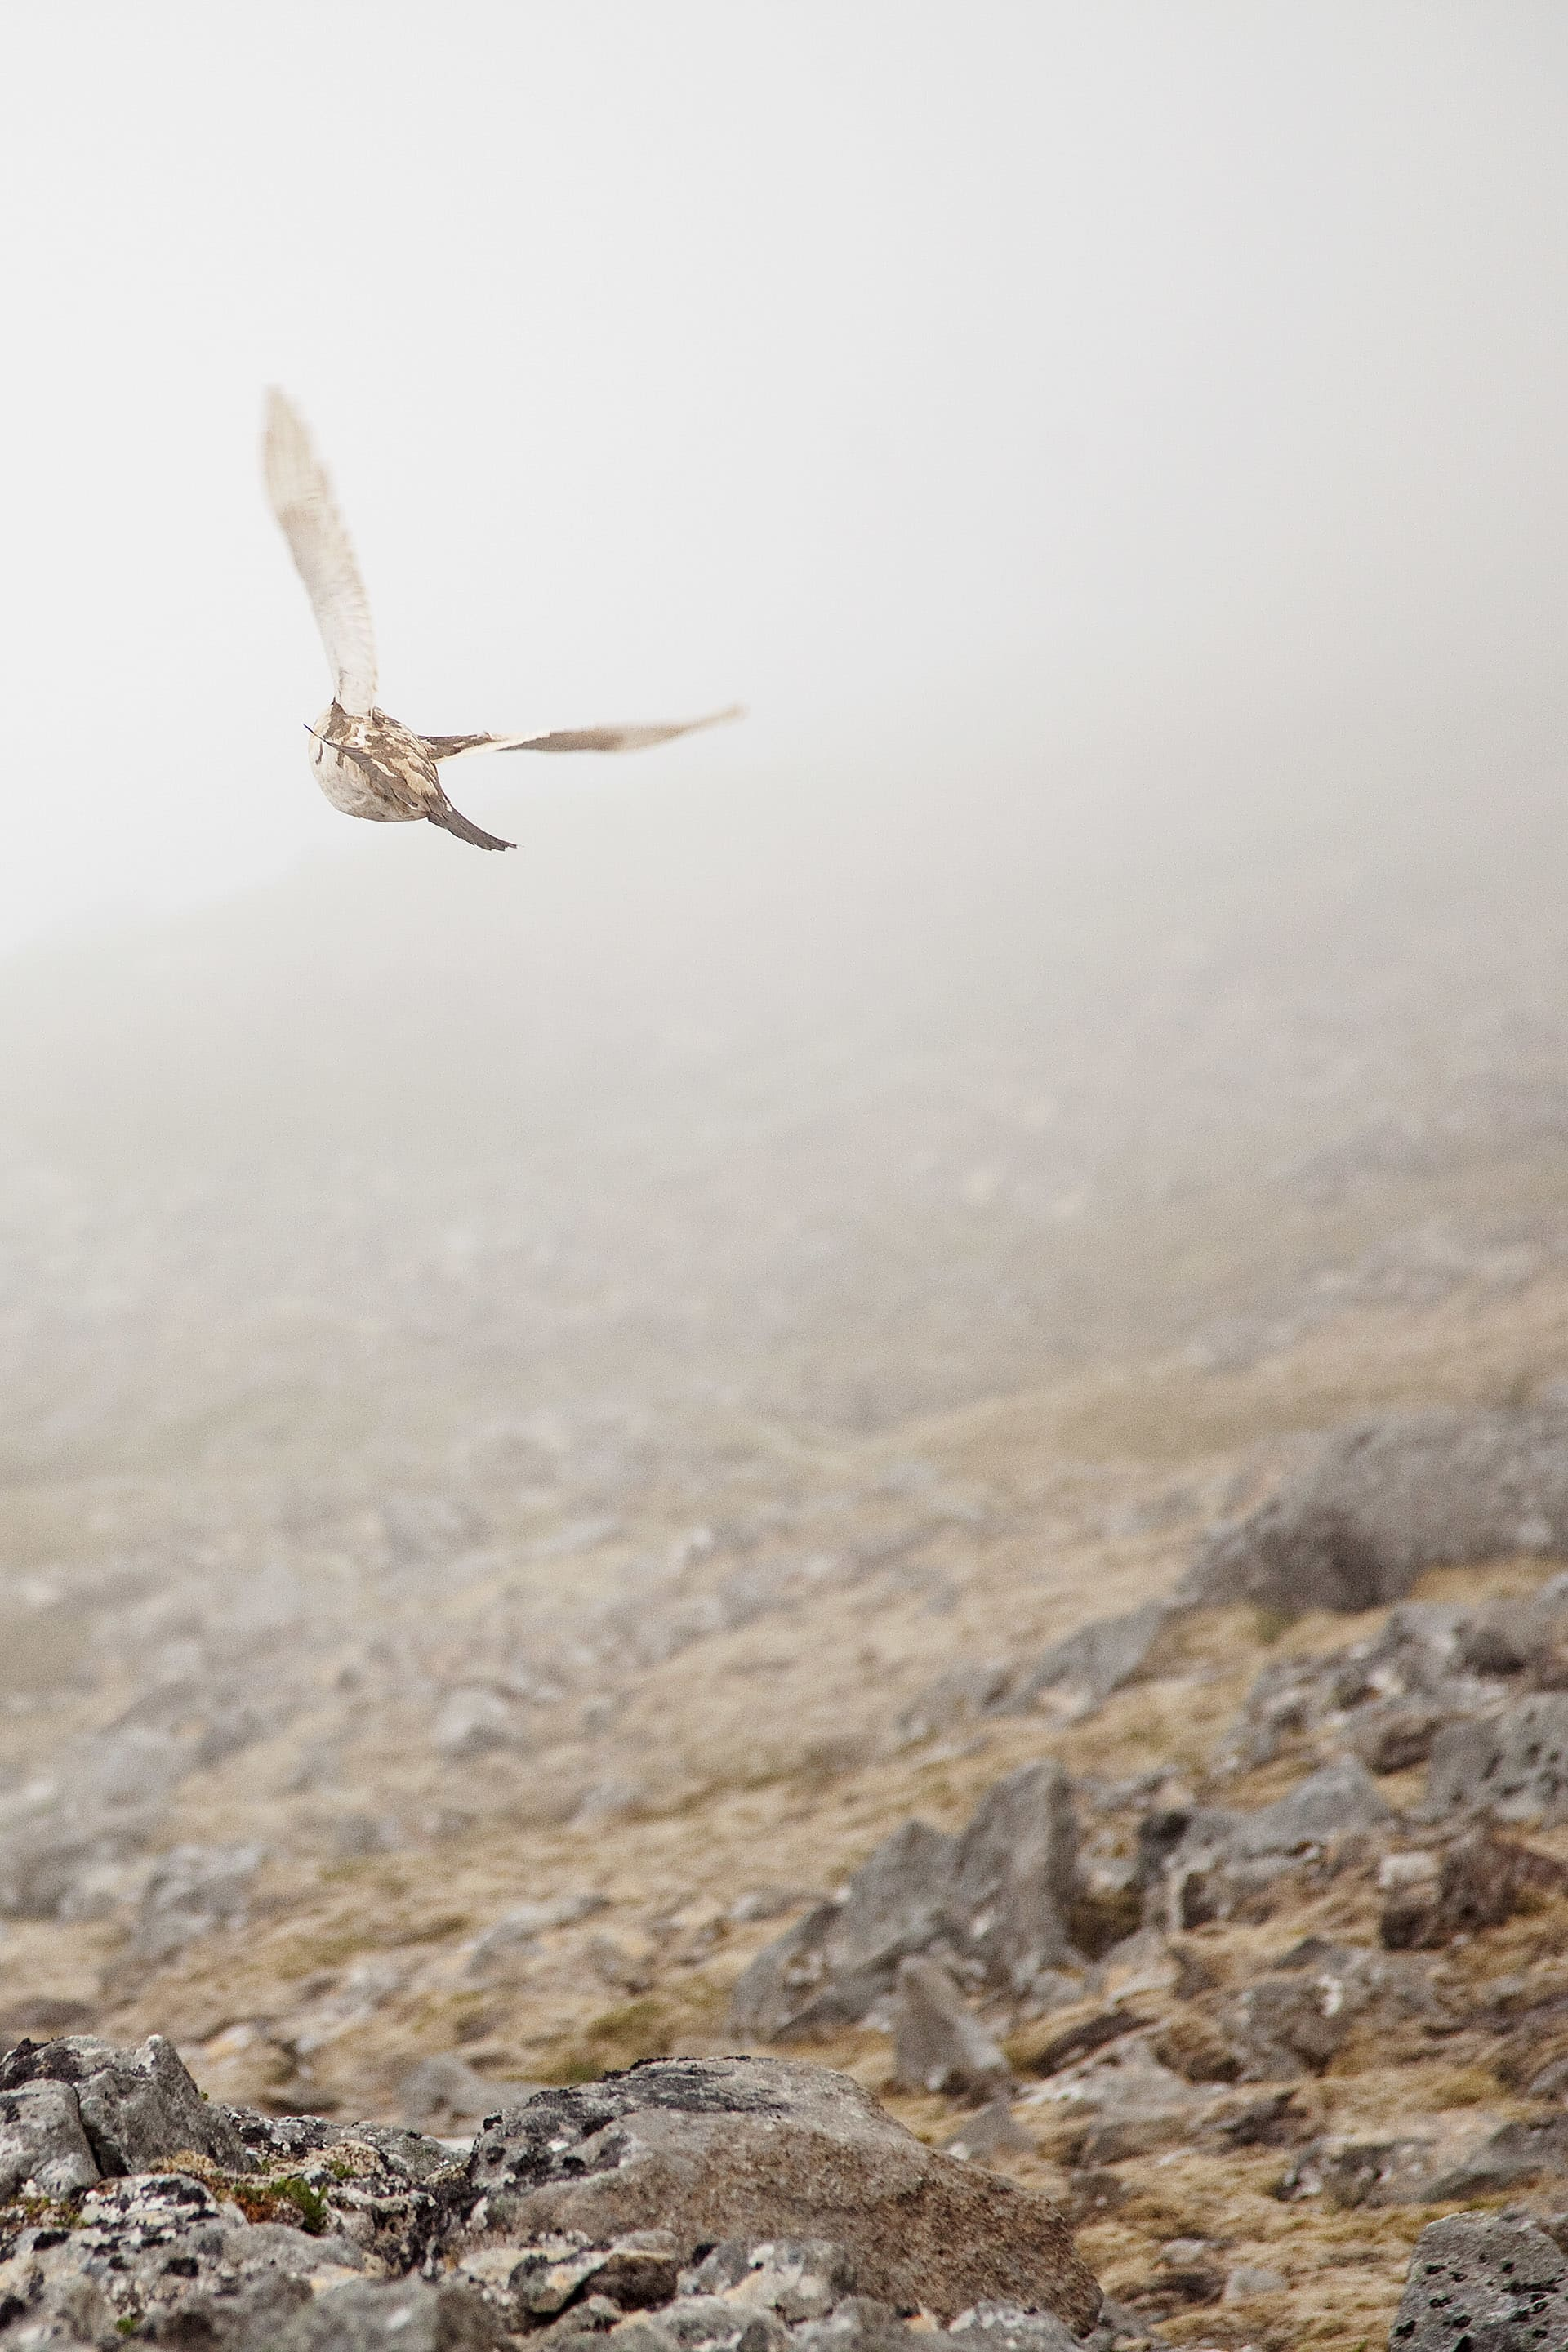 Mist and birds was a common sight on the hike.